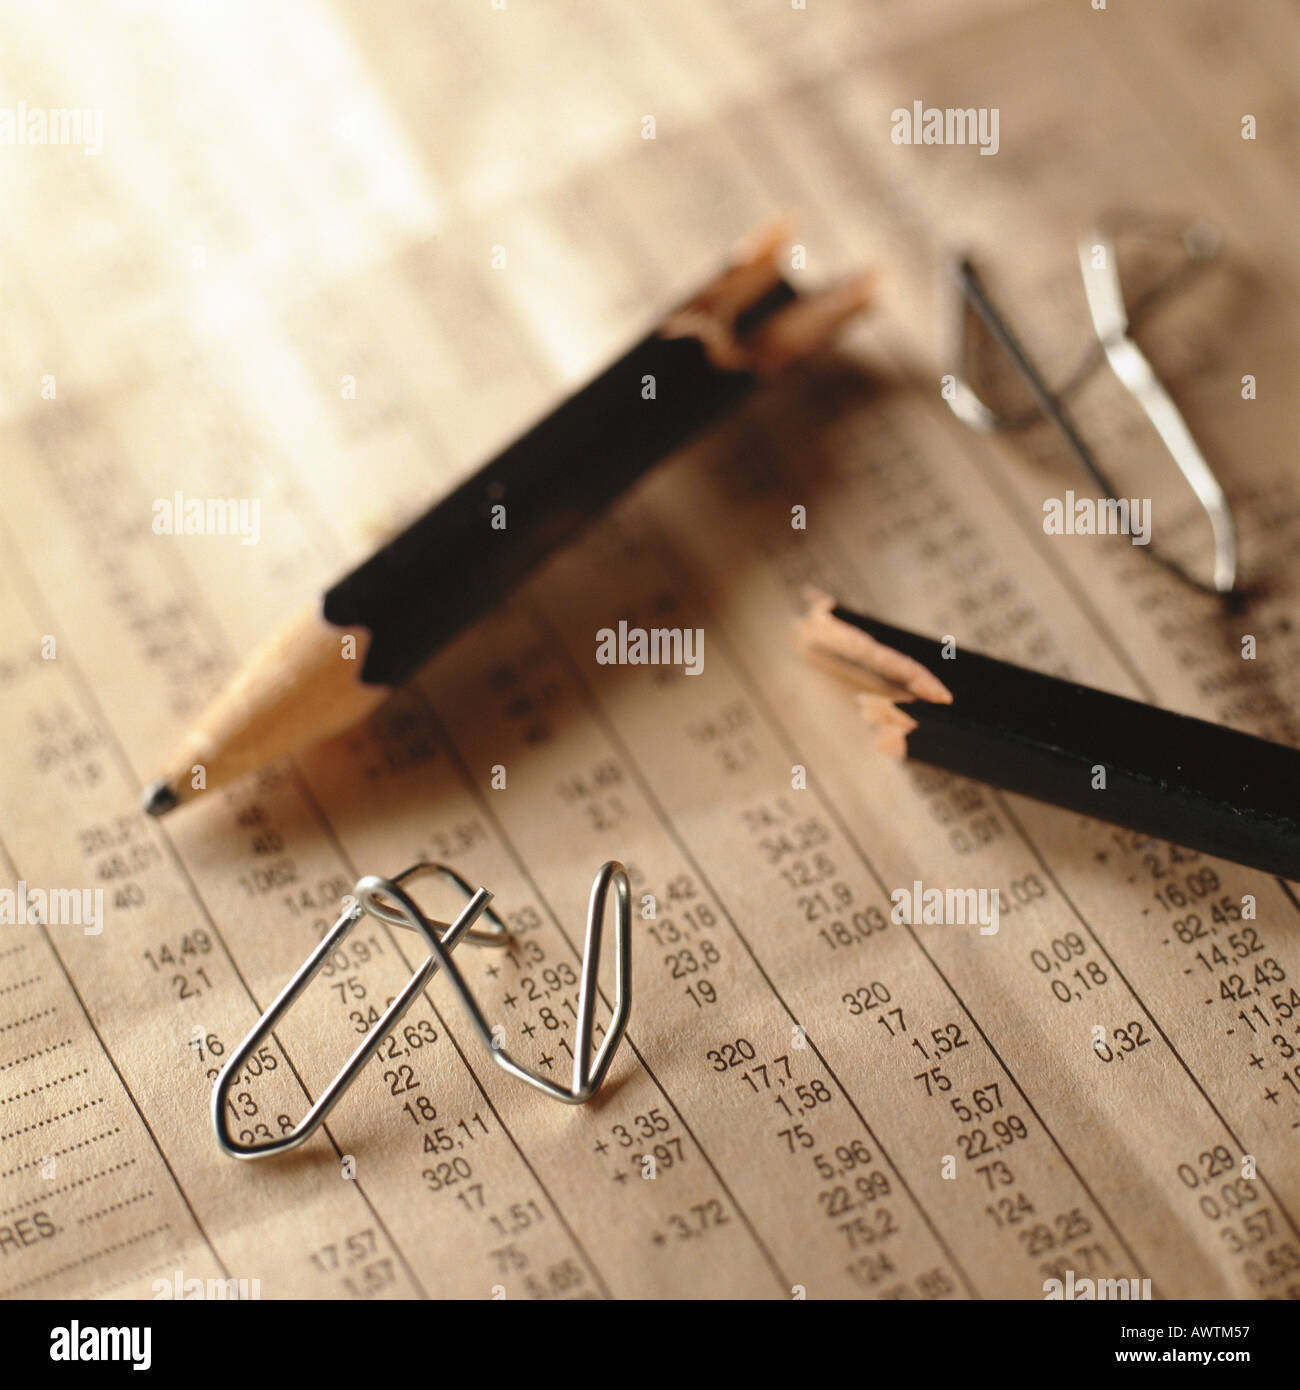 Broken pencil and twisted paper clips on top of financial numbers - Stock Image